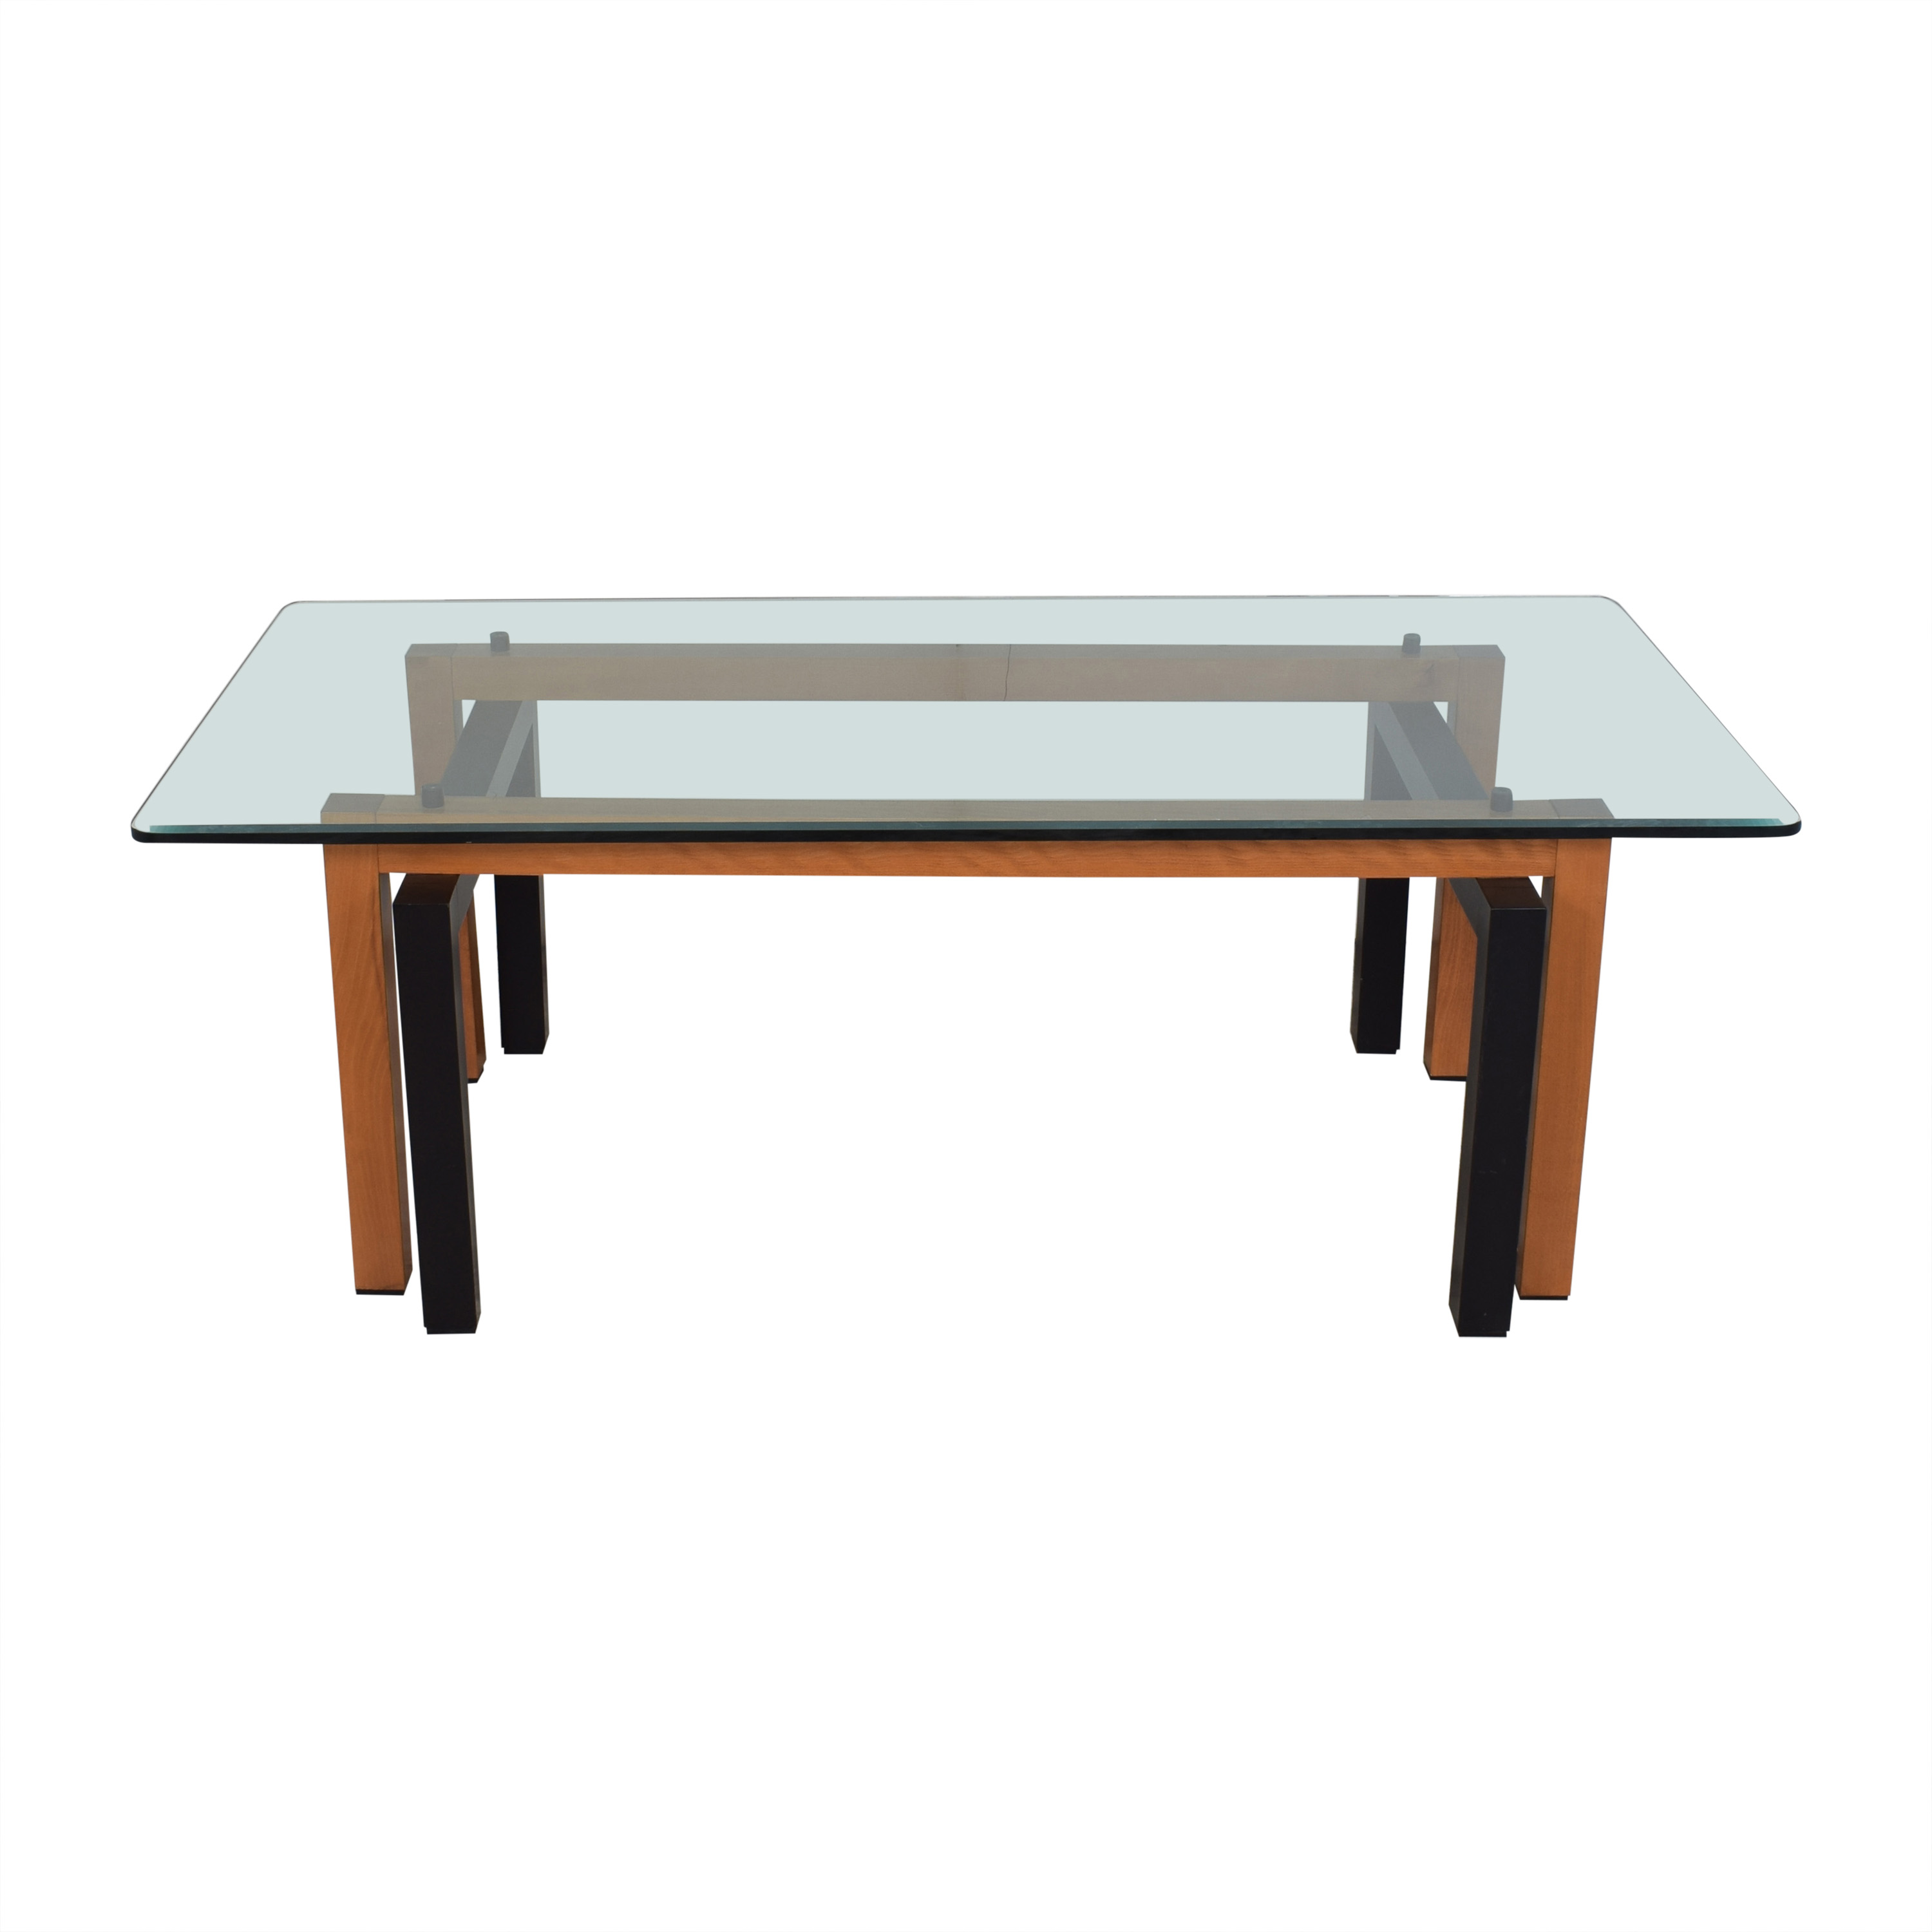 Ligna Furniture Dining Table / Dinner Tables